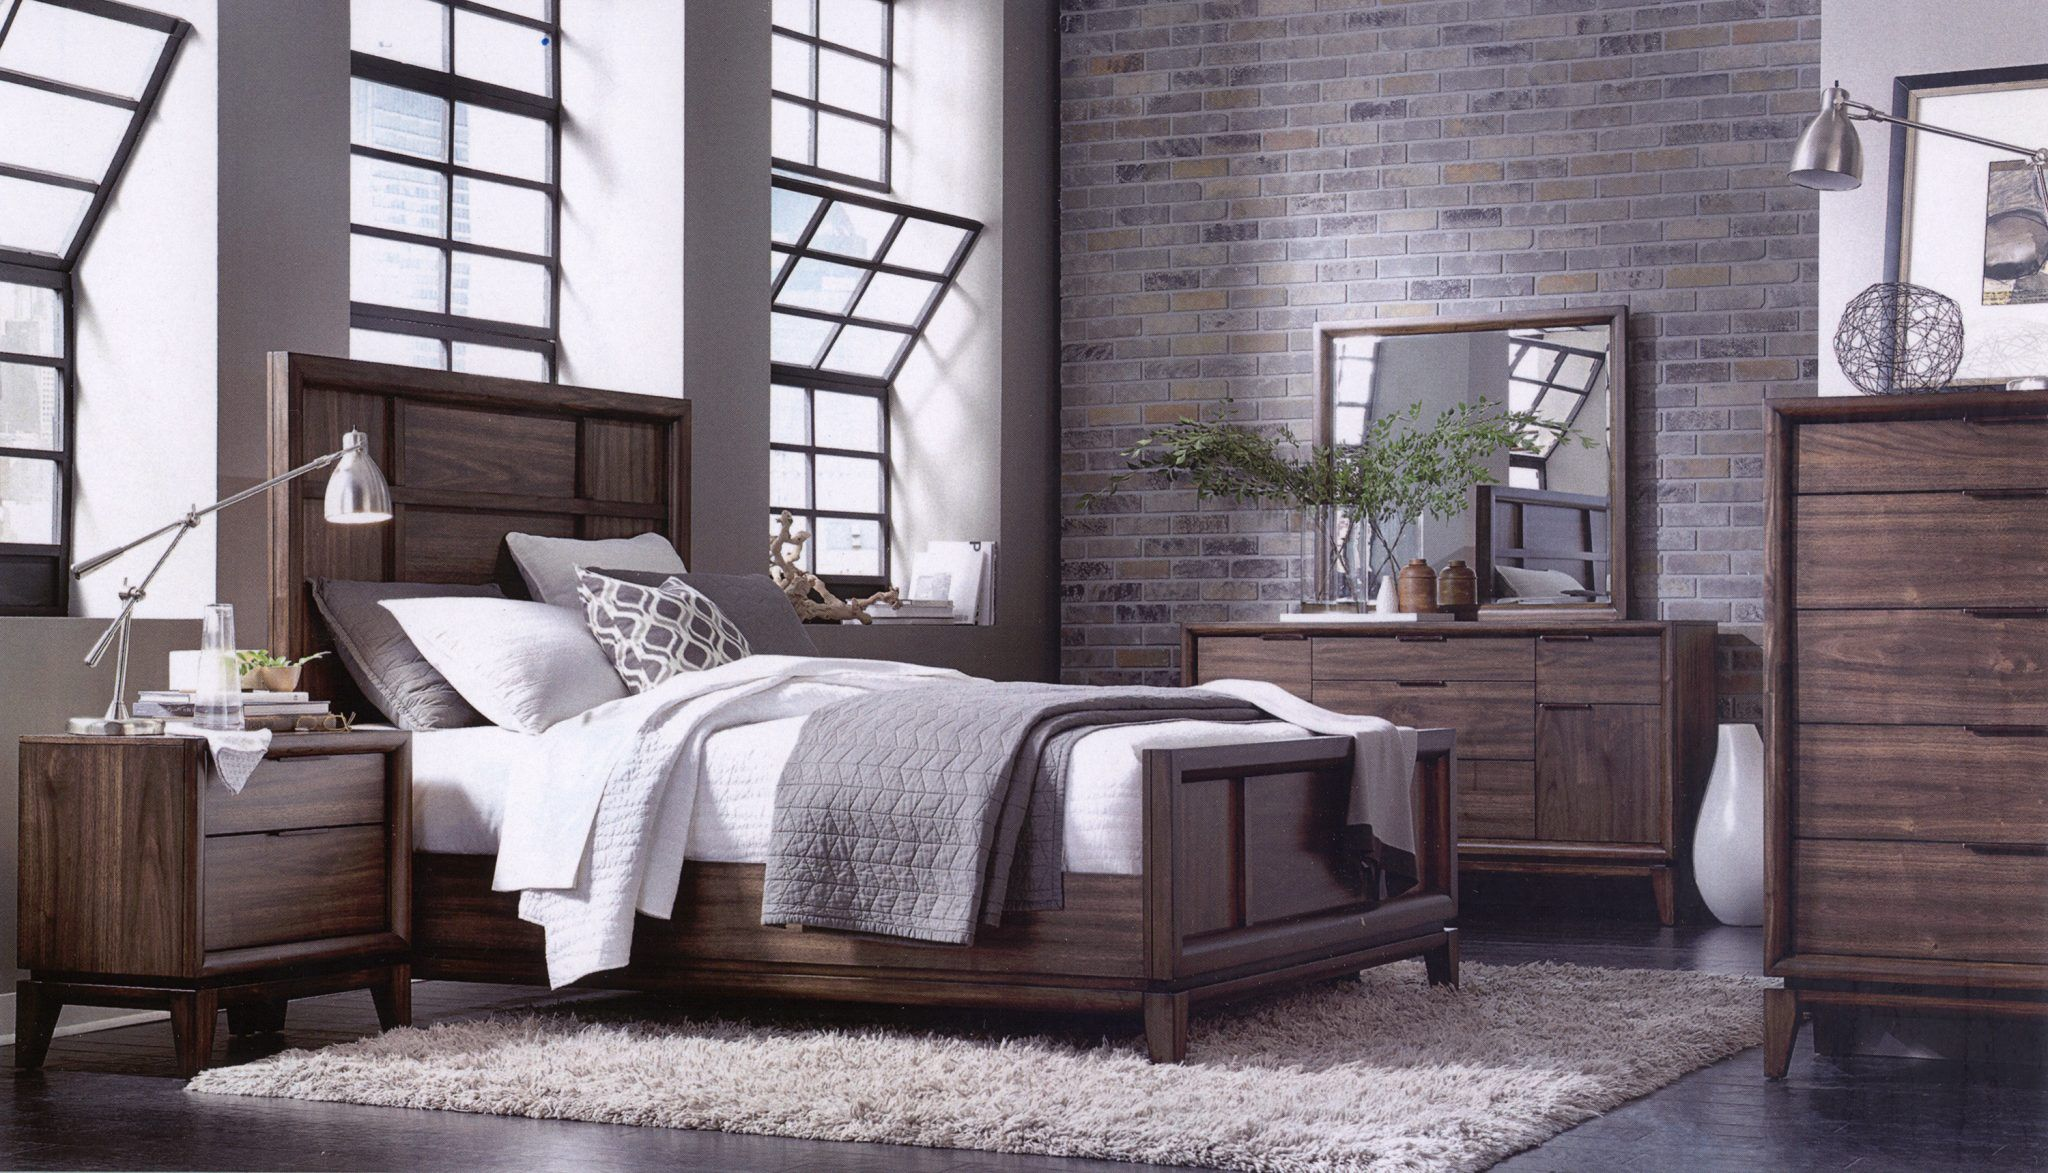 30 Amazing Picture of Bedrooms Furniture | Bedroom Furniture ...